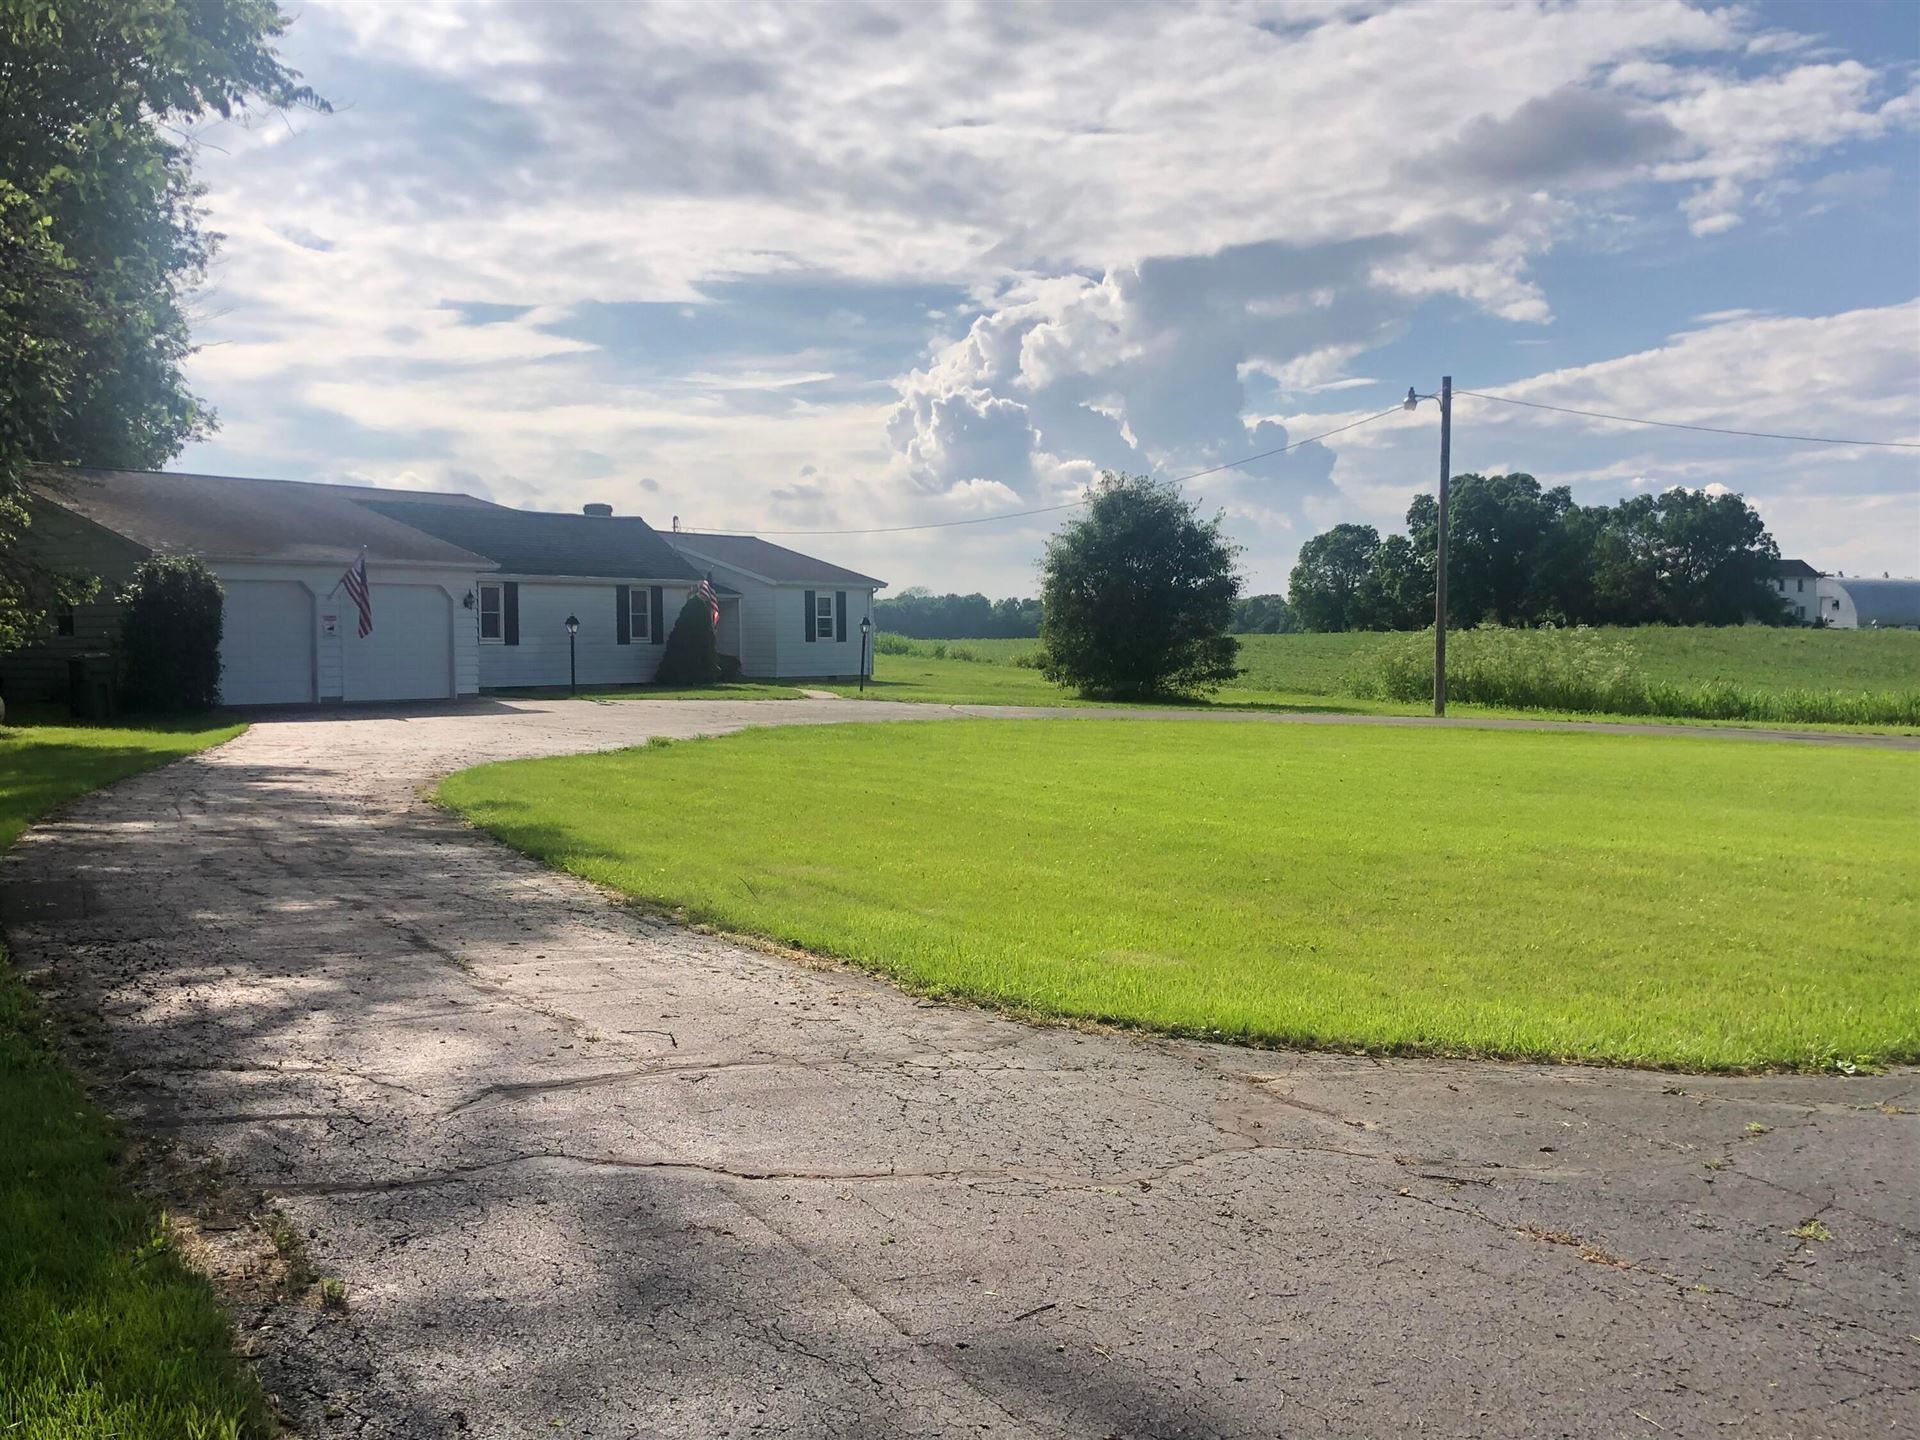 Photo for 12981 US Highway 23, Ashville, OH 43103 (MLS # 221020263)